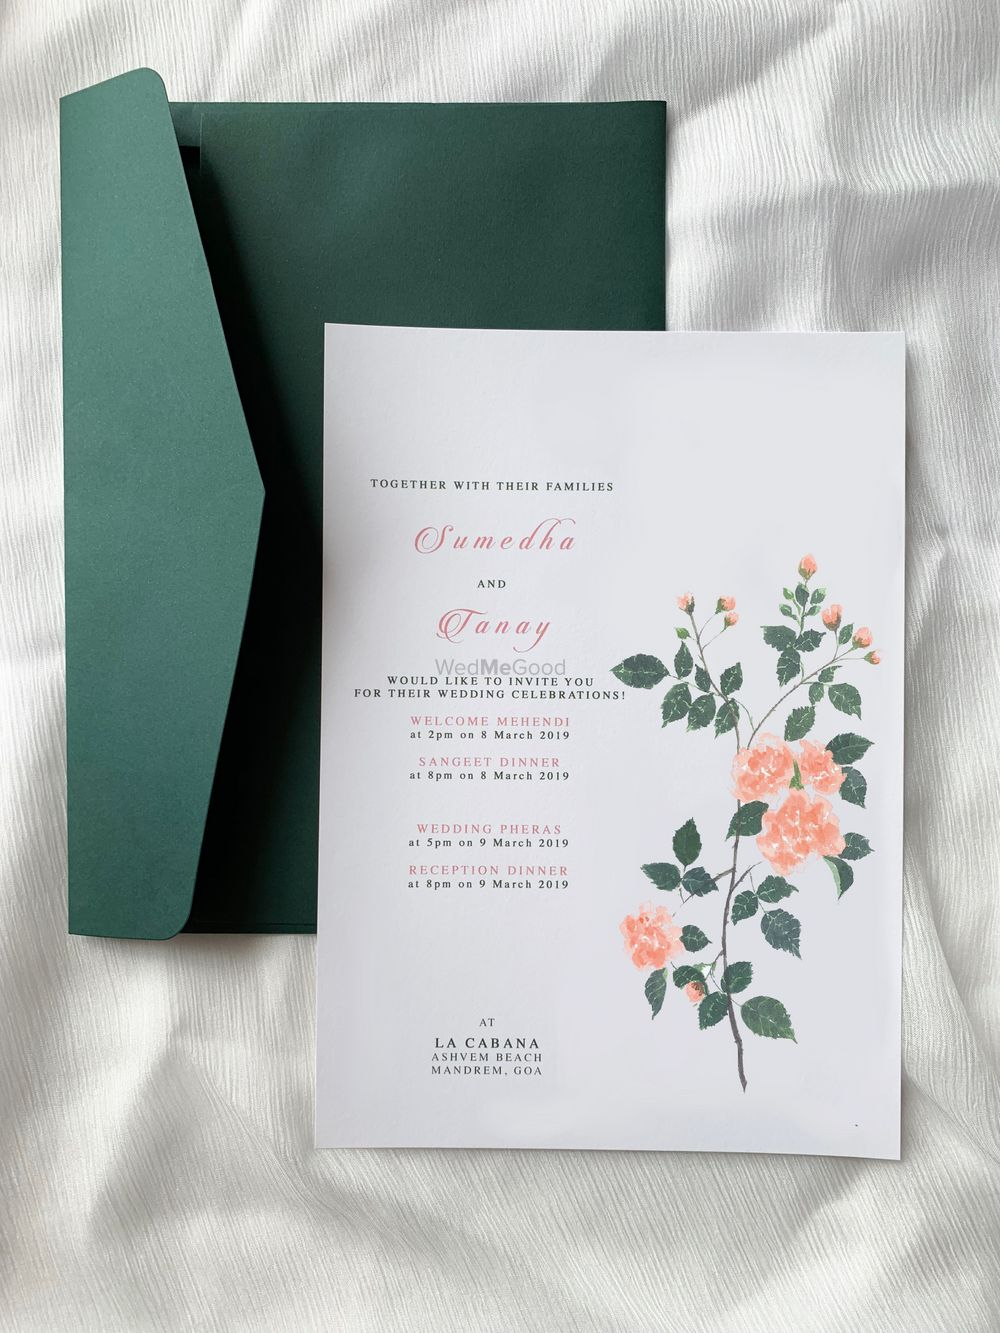 Photo By Pale Pink Studio - Invitations